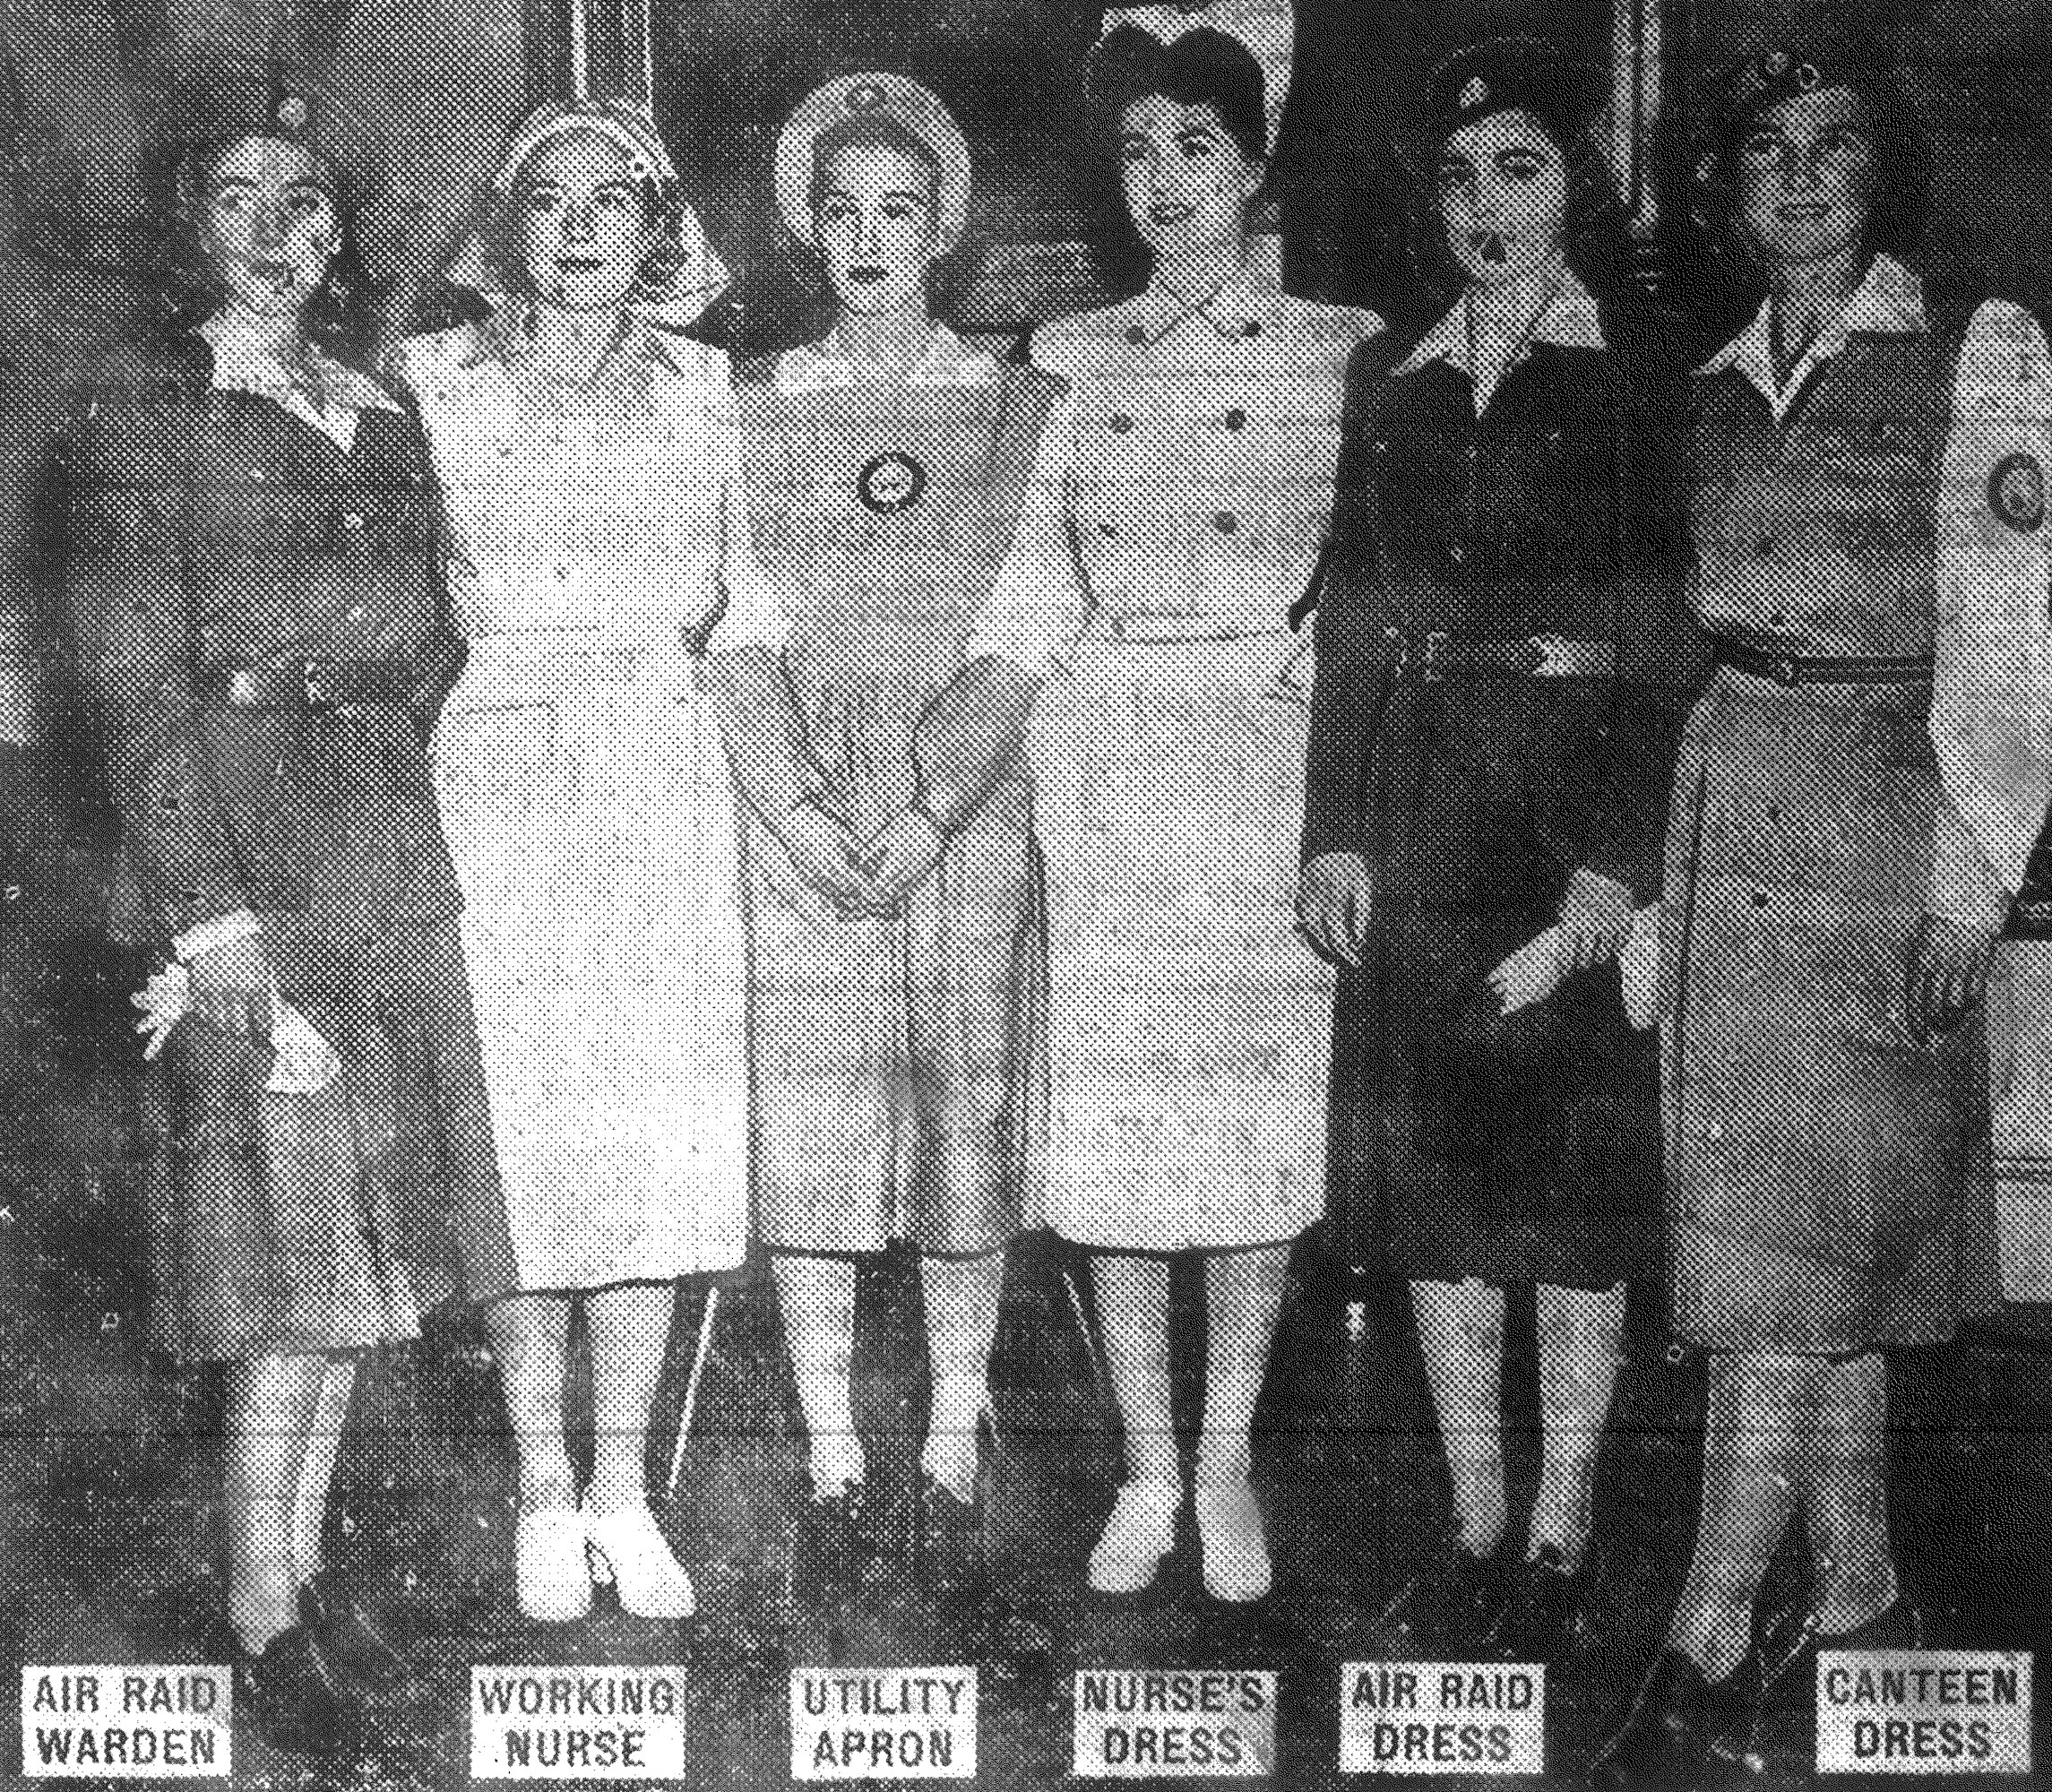 These uniforms for women doing war work had the official approval of Civilian Defense Director La Guardia.